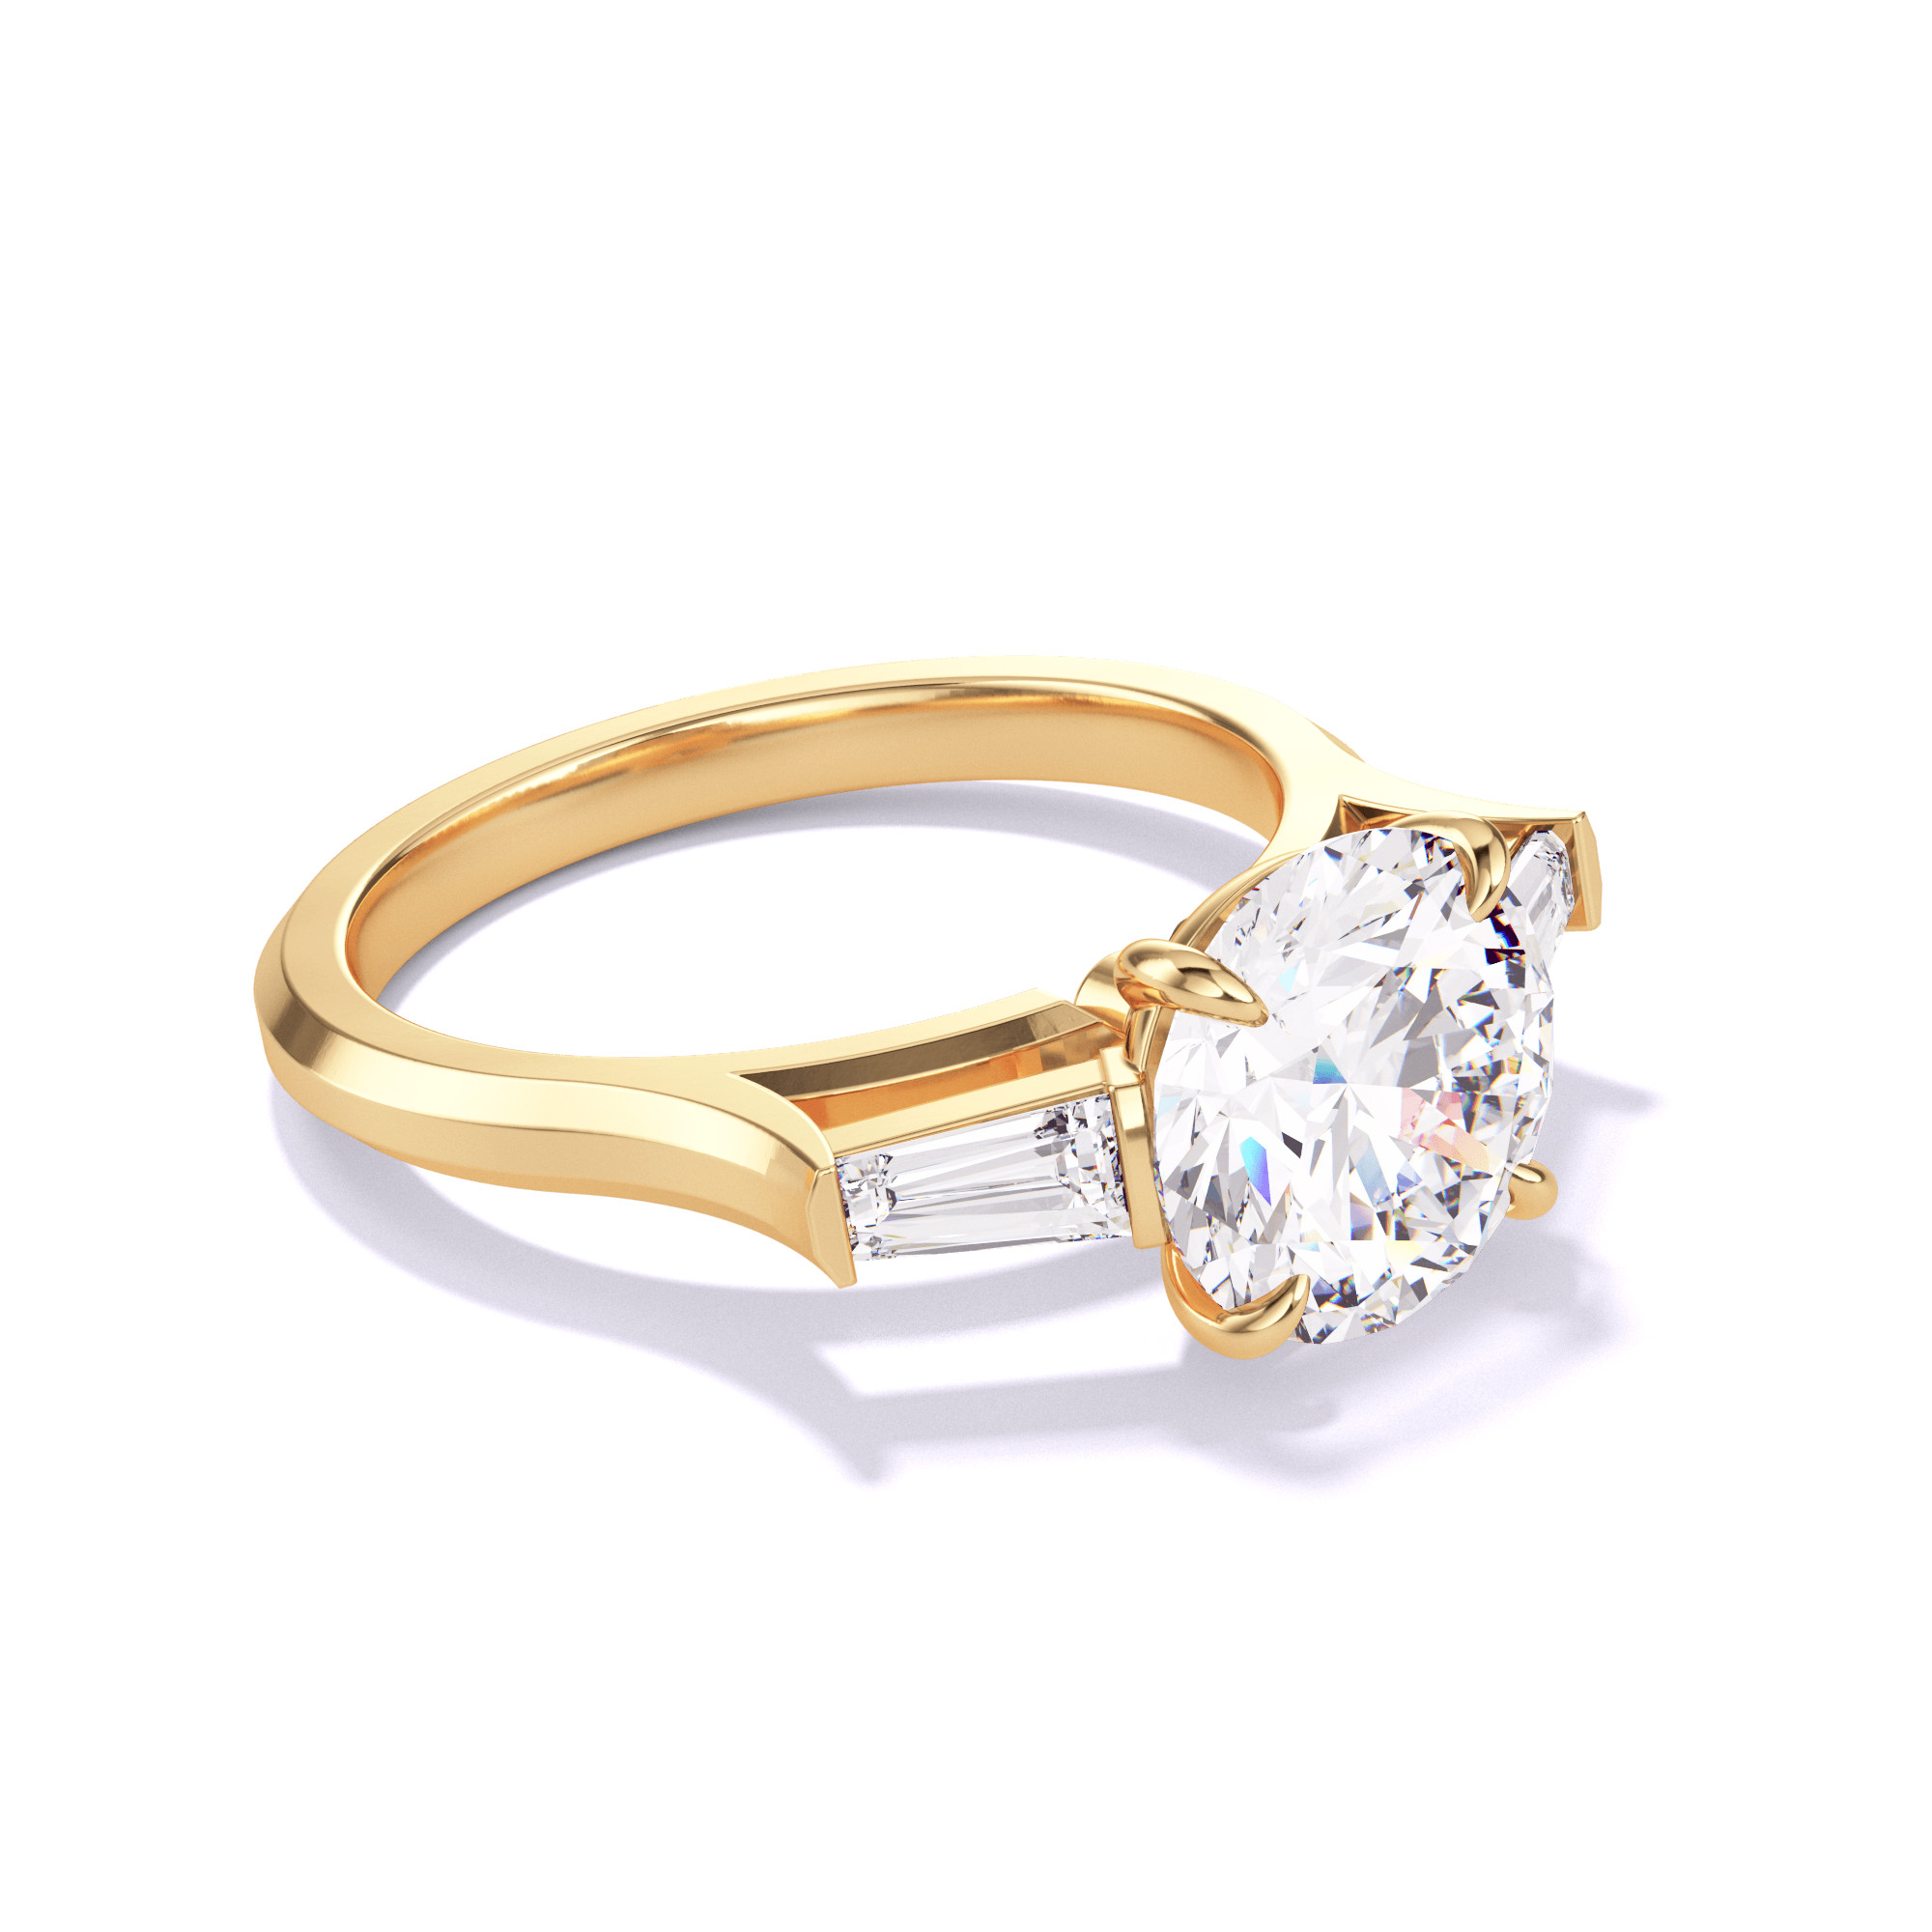 ROUND CUT, BAGUETTE FLANK SETTING, THREE PHASES SLIM, 18K YELLOW GOLD